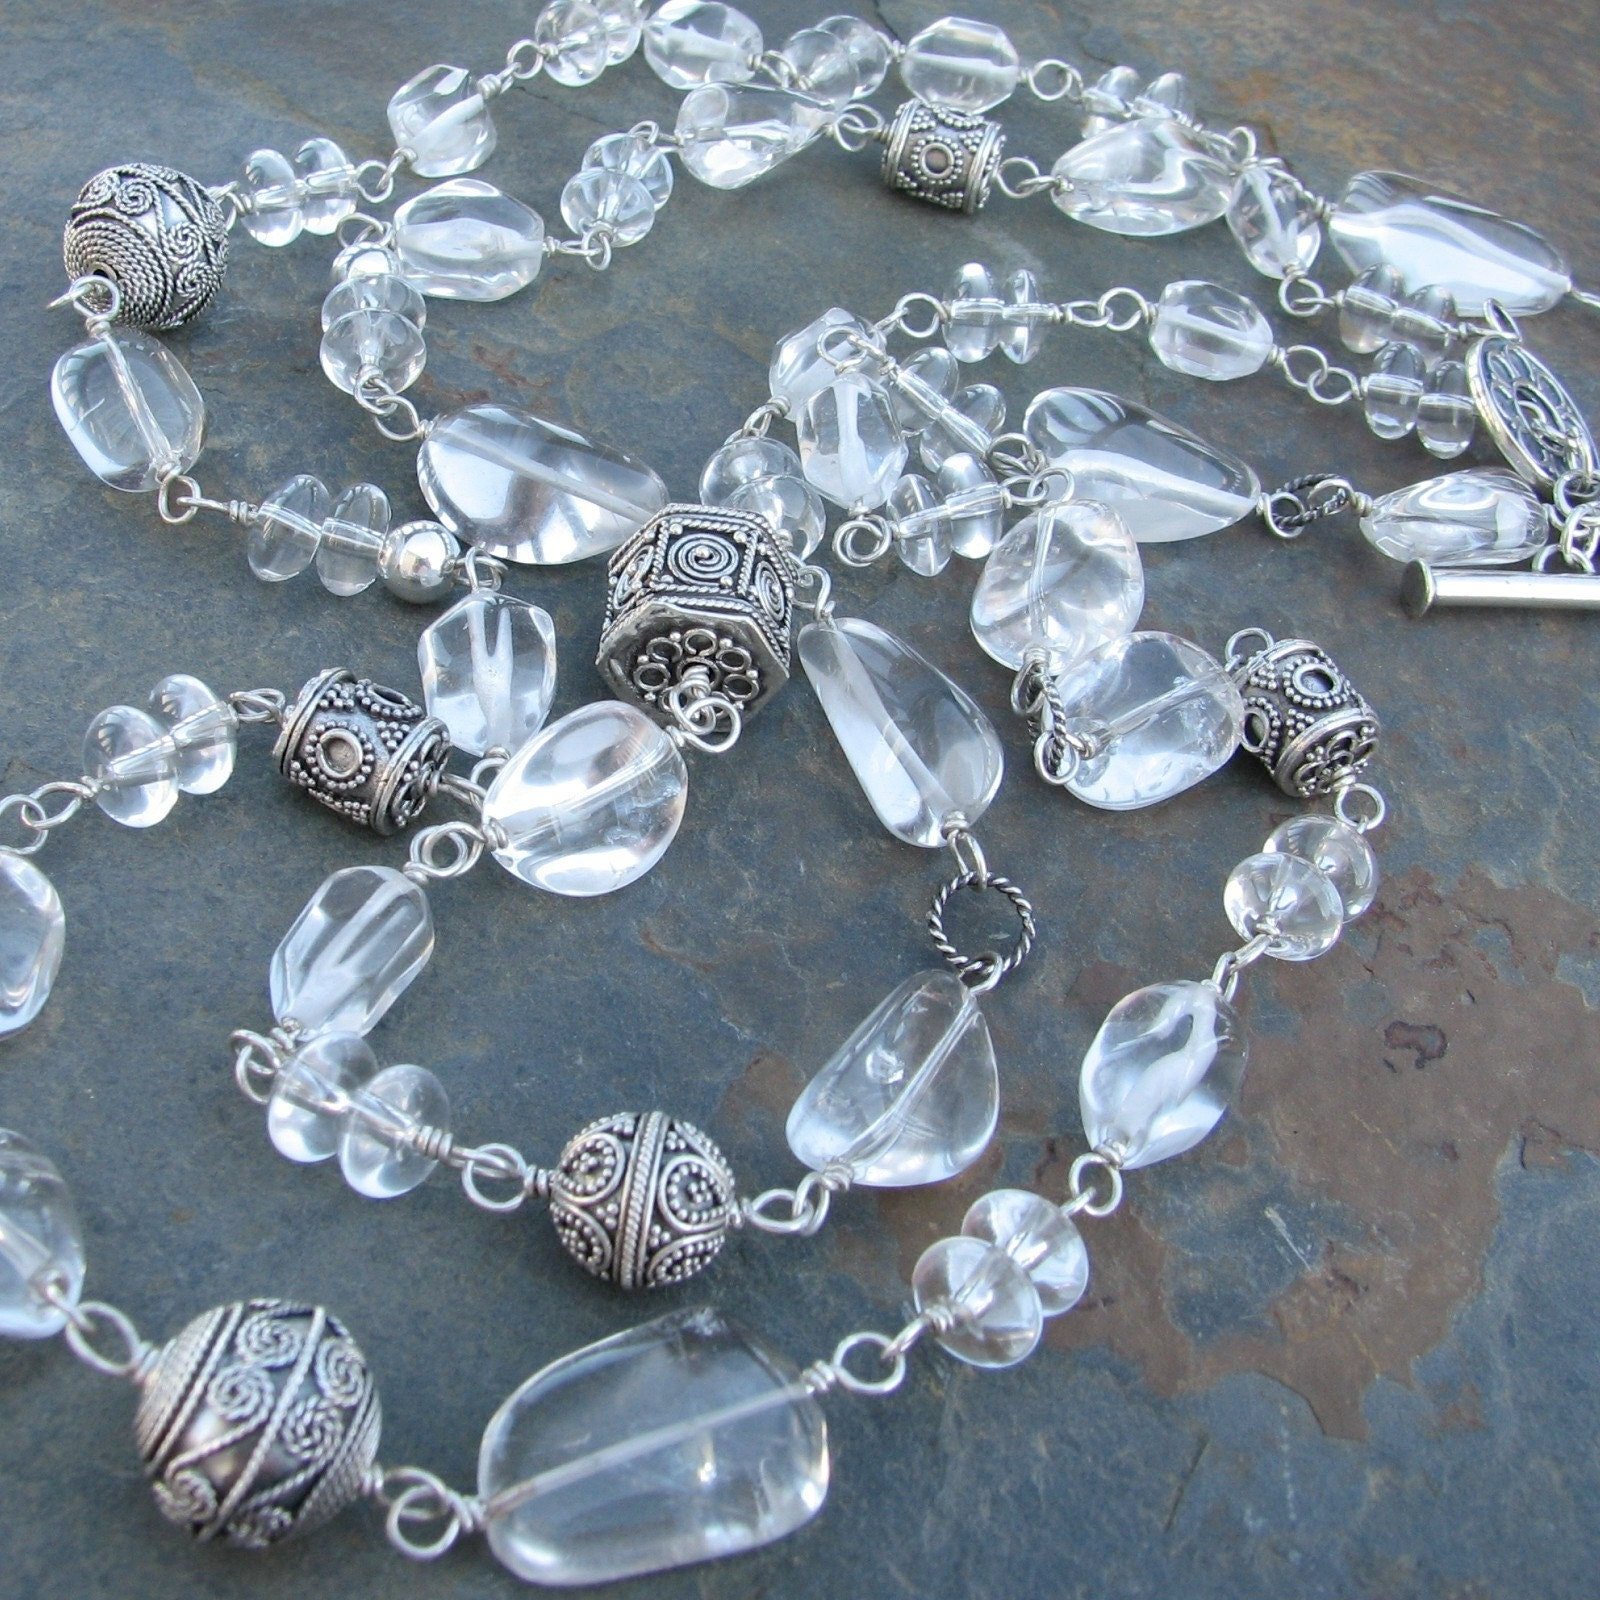 Ice is Nice natural rock quartz, Bali sterling necklace